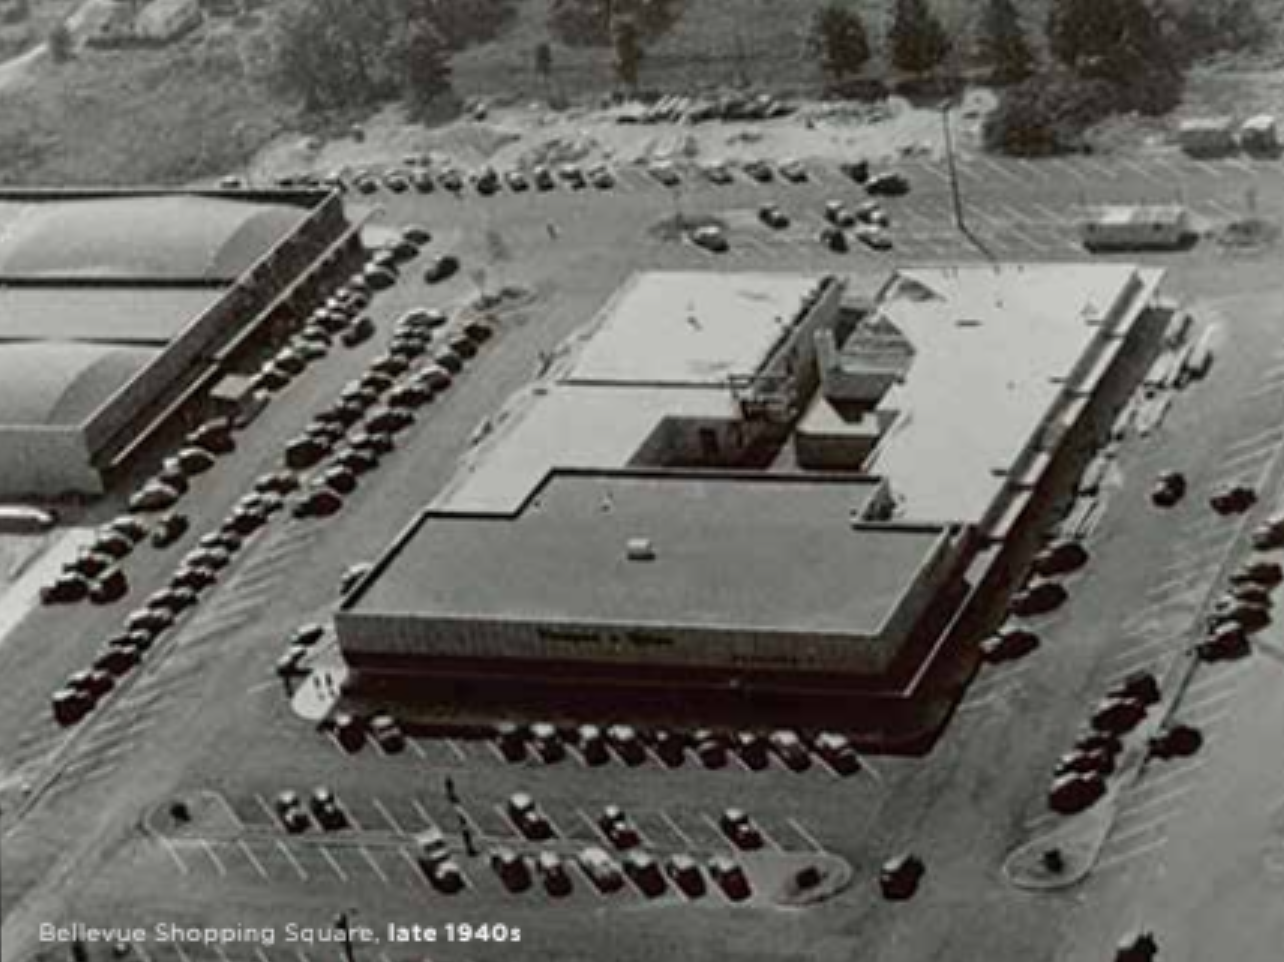 Bellevue Shopping Square in the late 1940s